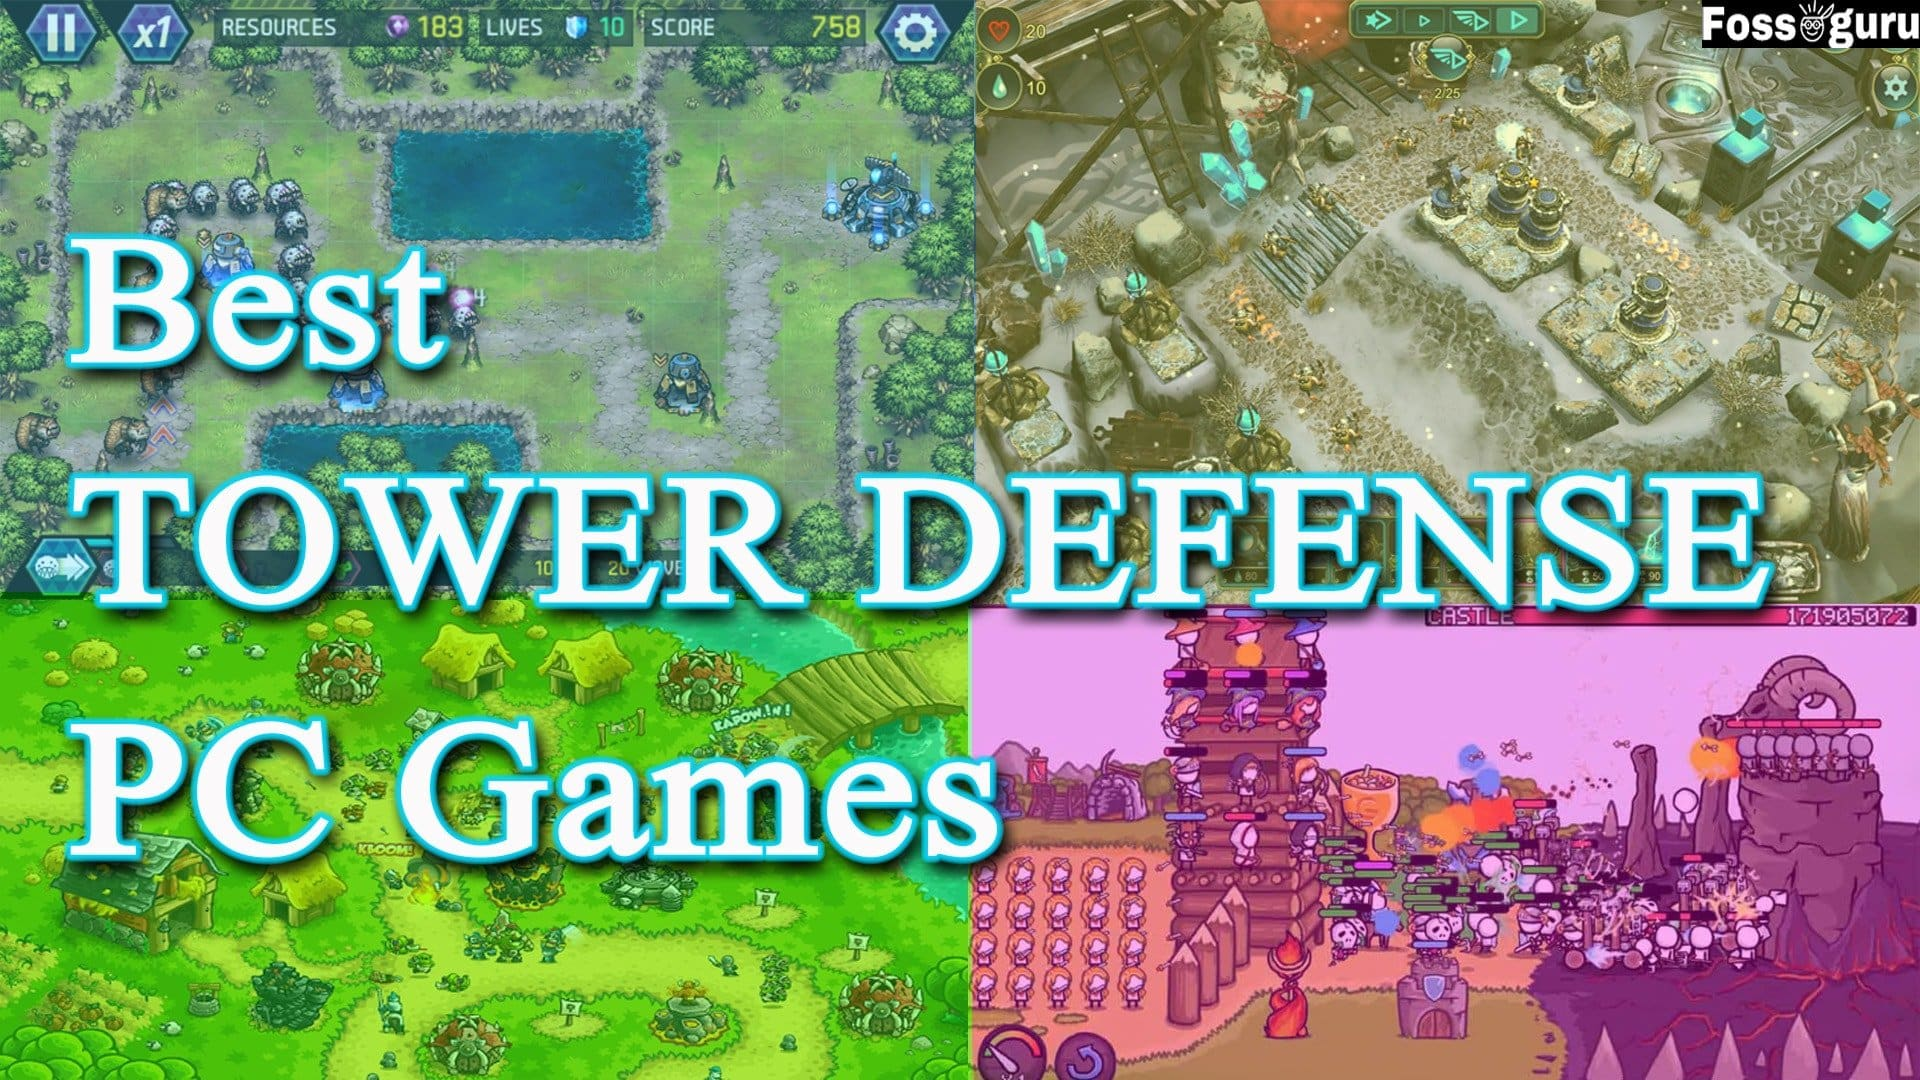 Best Tower Defense Games PC and Android